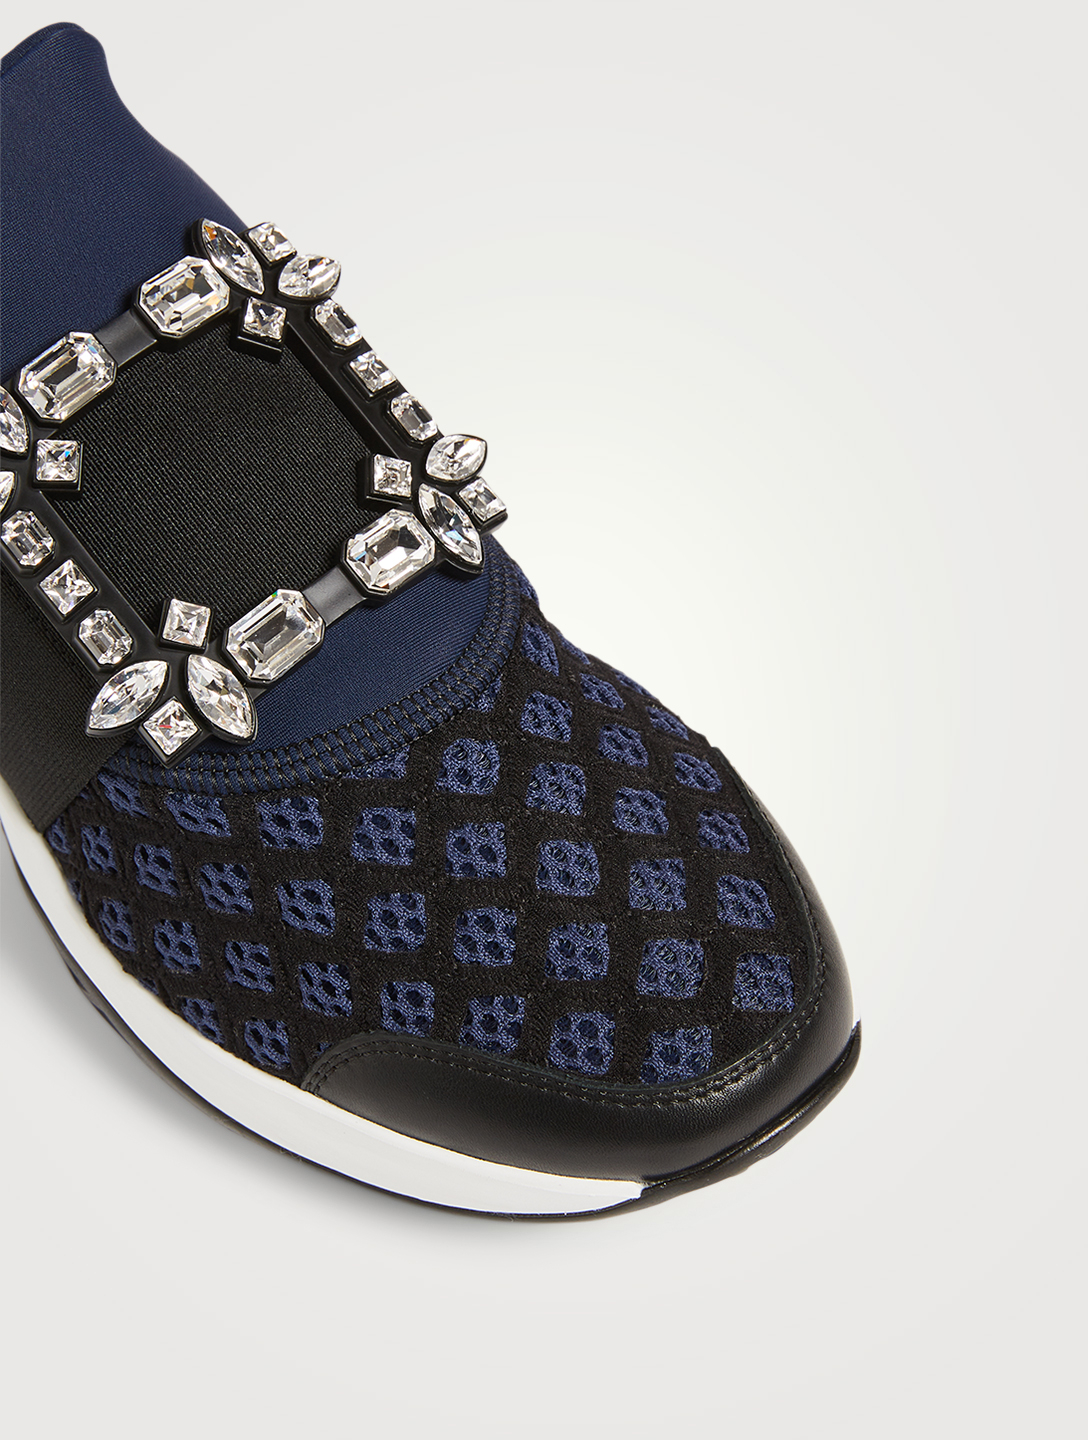 ROGER VIVIER Viv' Run Sneakers With Strass Buckle Women's Blue